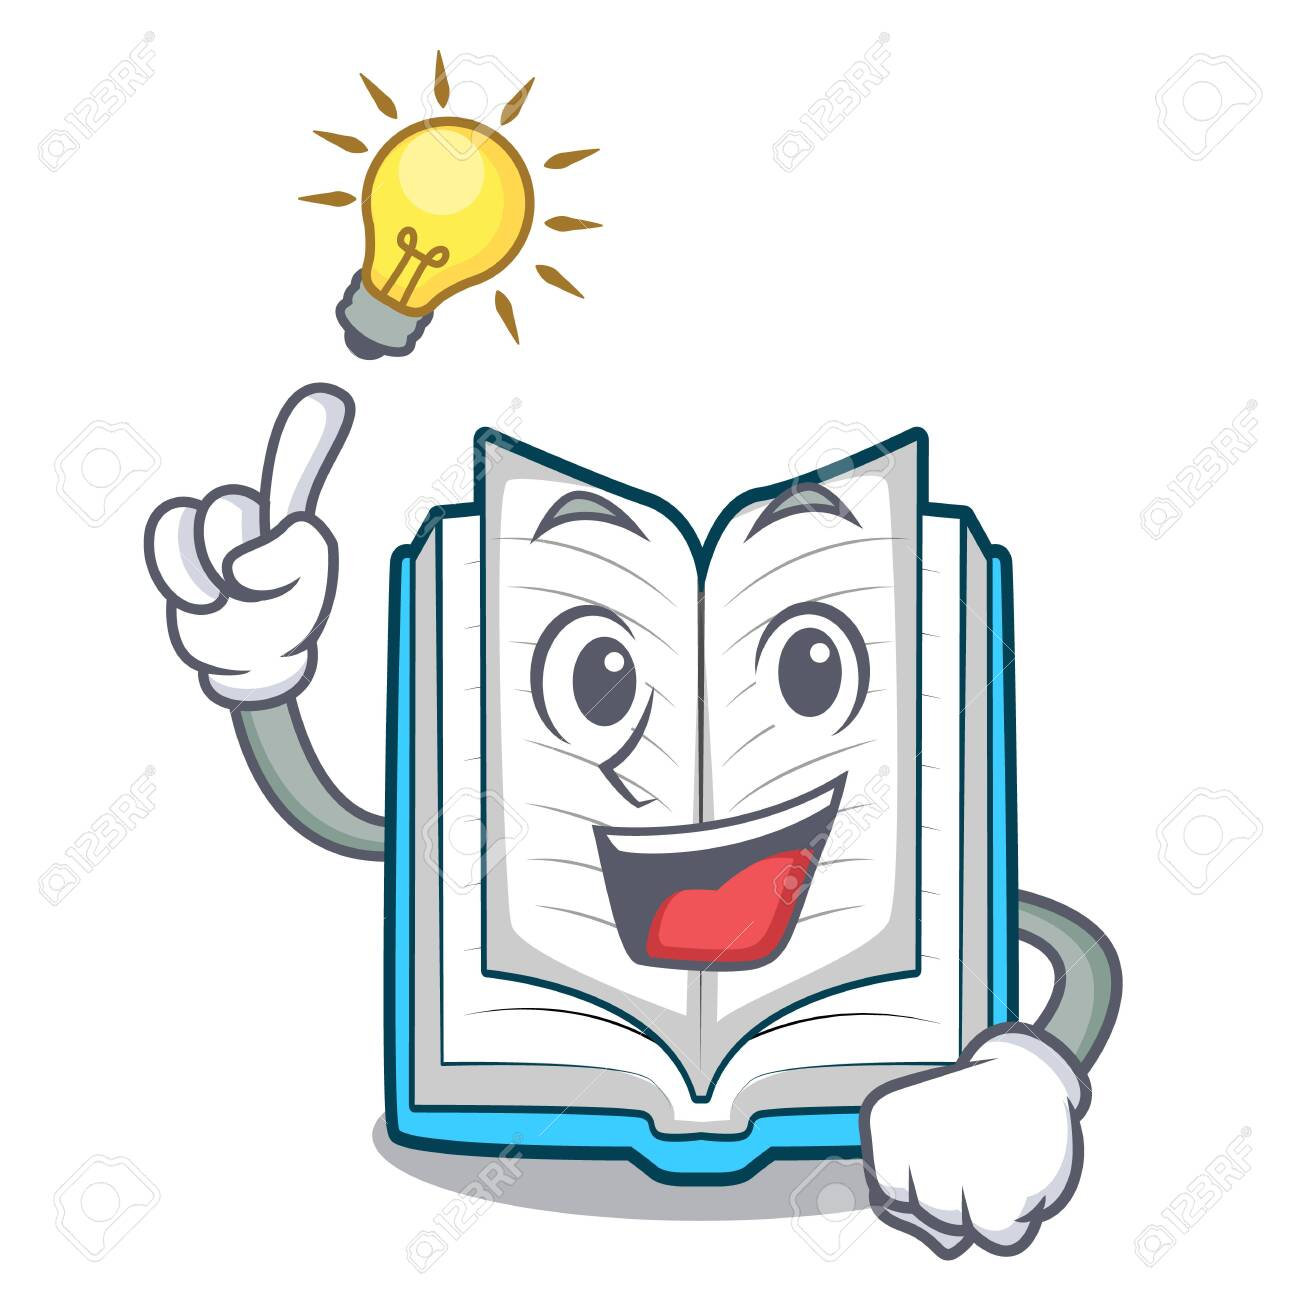 Have an idea opened book in the cartoon box vetor illustration - 124483791